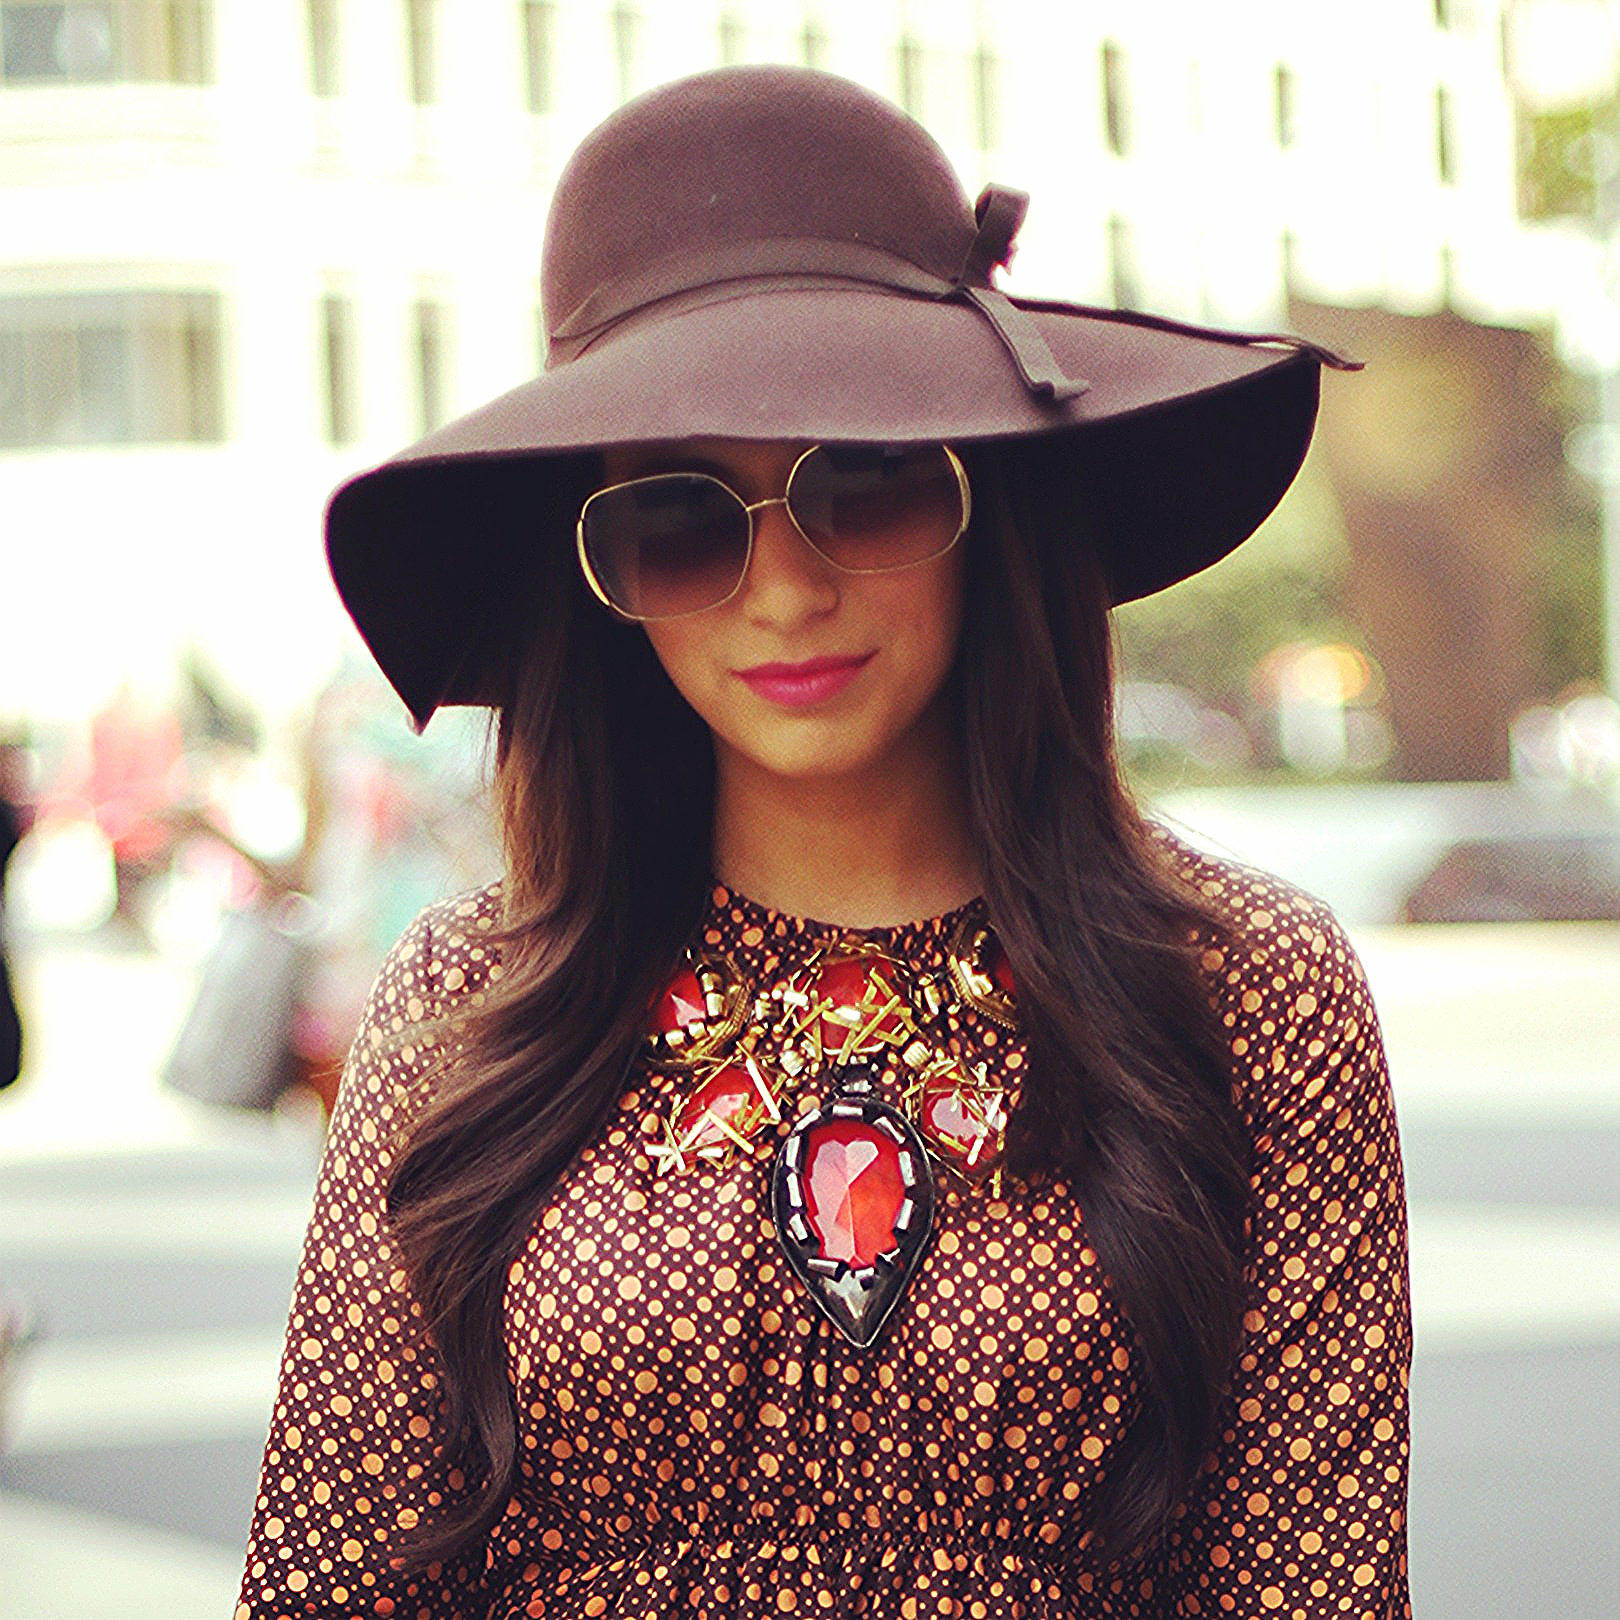 Marni dress,   Ralph Lauren  hat,  Marc by Marc Jacobs  sunglasses, Erickson Beamon necklace (e-mail me to special order)